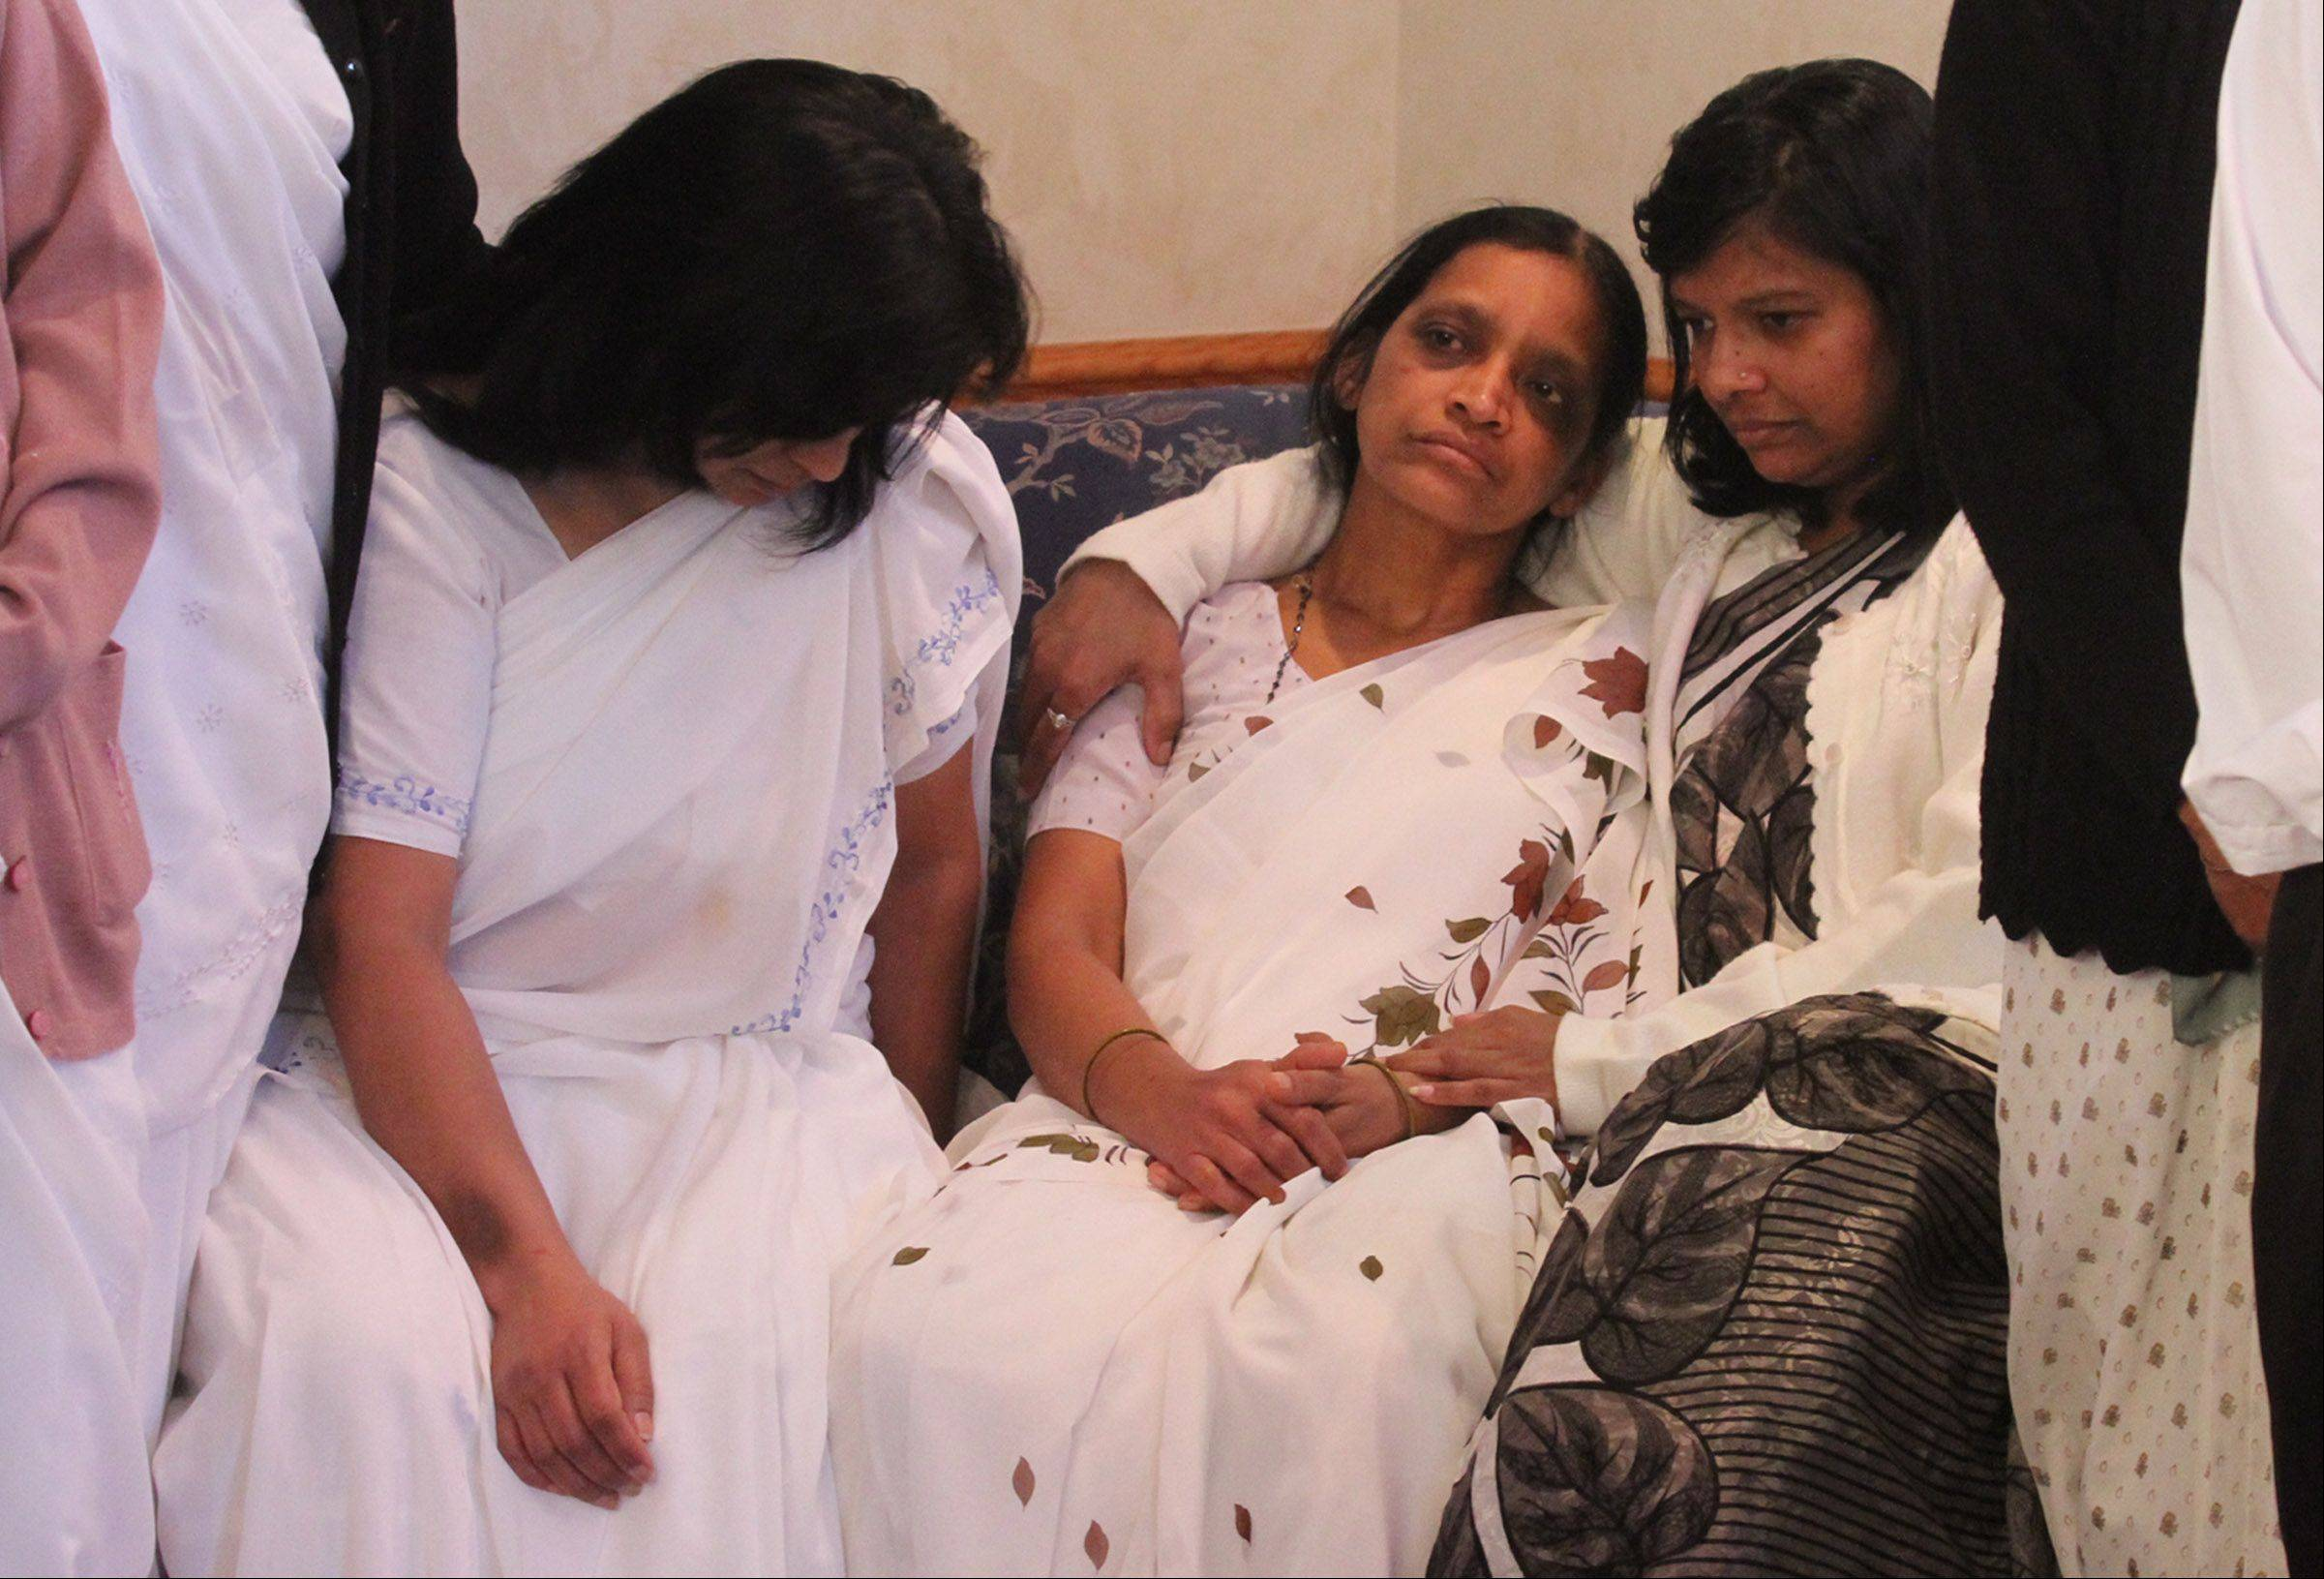 Anandkumar Jaiswal's mother, Malti Jaiswal, is consoled by family members as Streamwood police announce an increase in the reward for information that may help find the person behind his murder Saturday during a robbery.